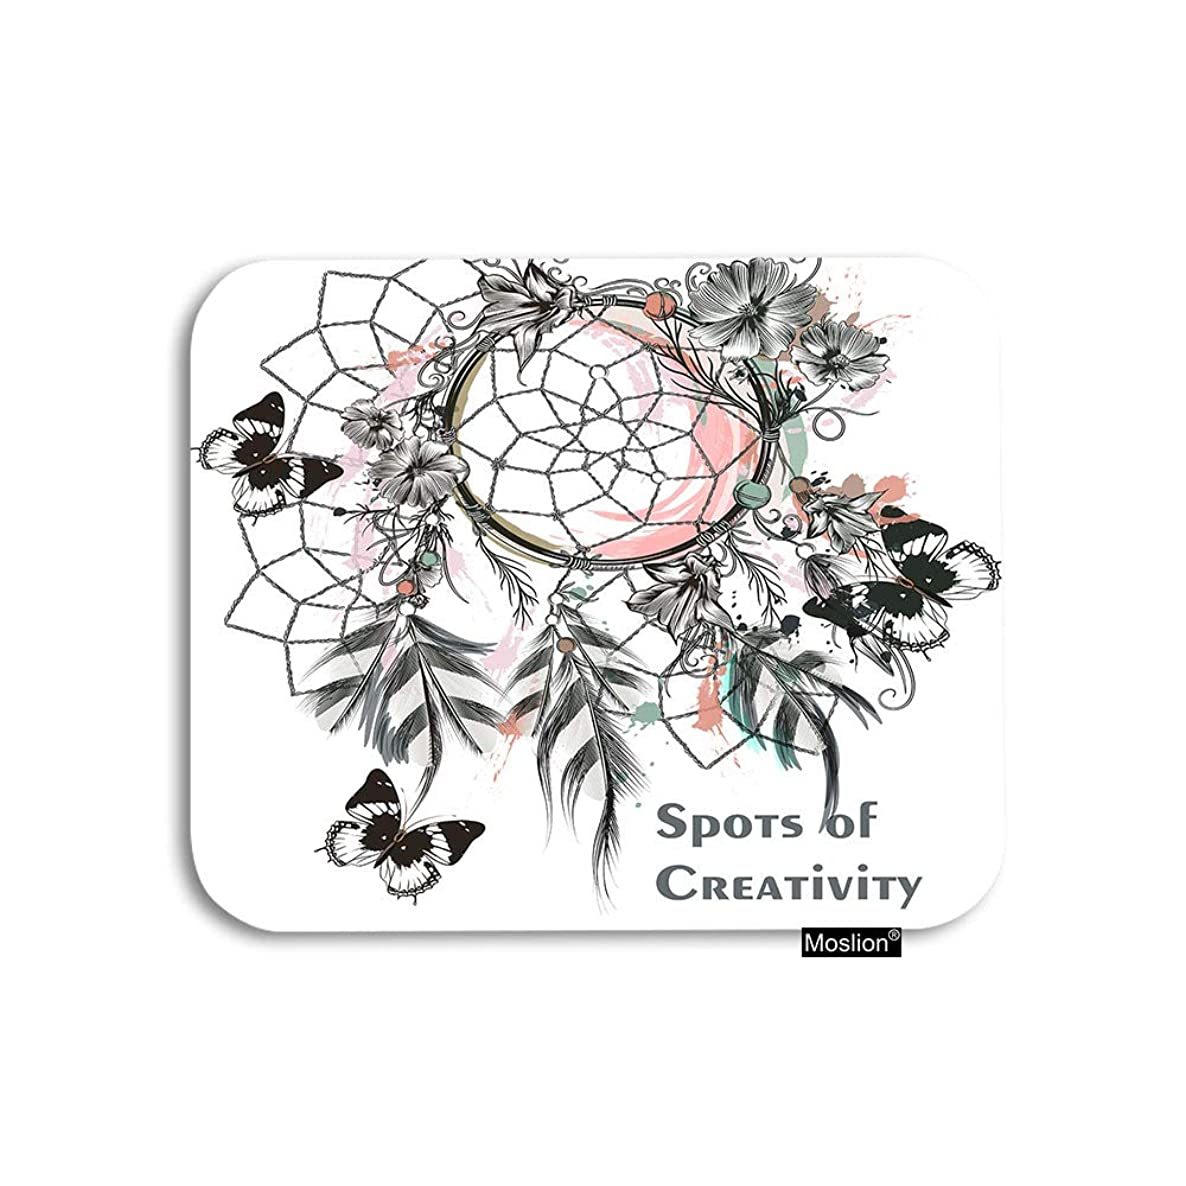 Moslion Dream Catcher Mouse Pad Vintage Aztec Bohemian Net with Flower Leaf Feather Butterfly Gaming Mouse Pad Rubber Large Mousepad for Computer Desk Laptop Office Work 7.9x9.5 Inch